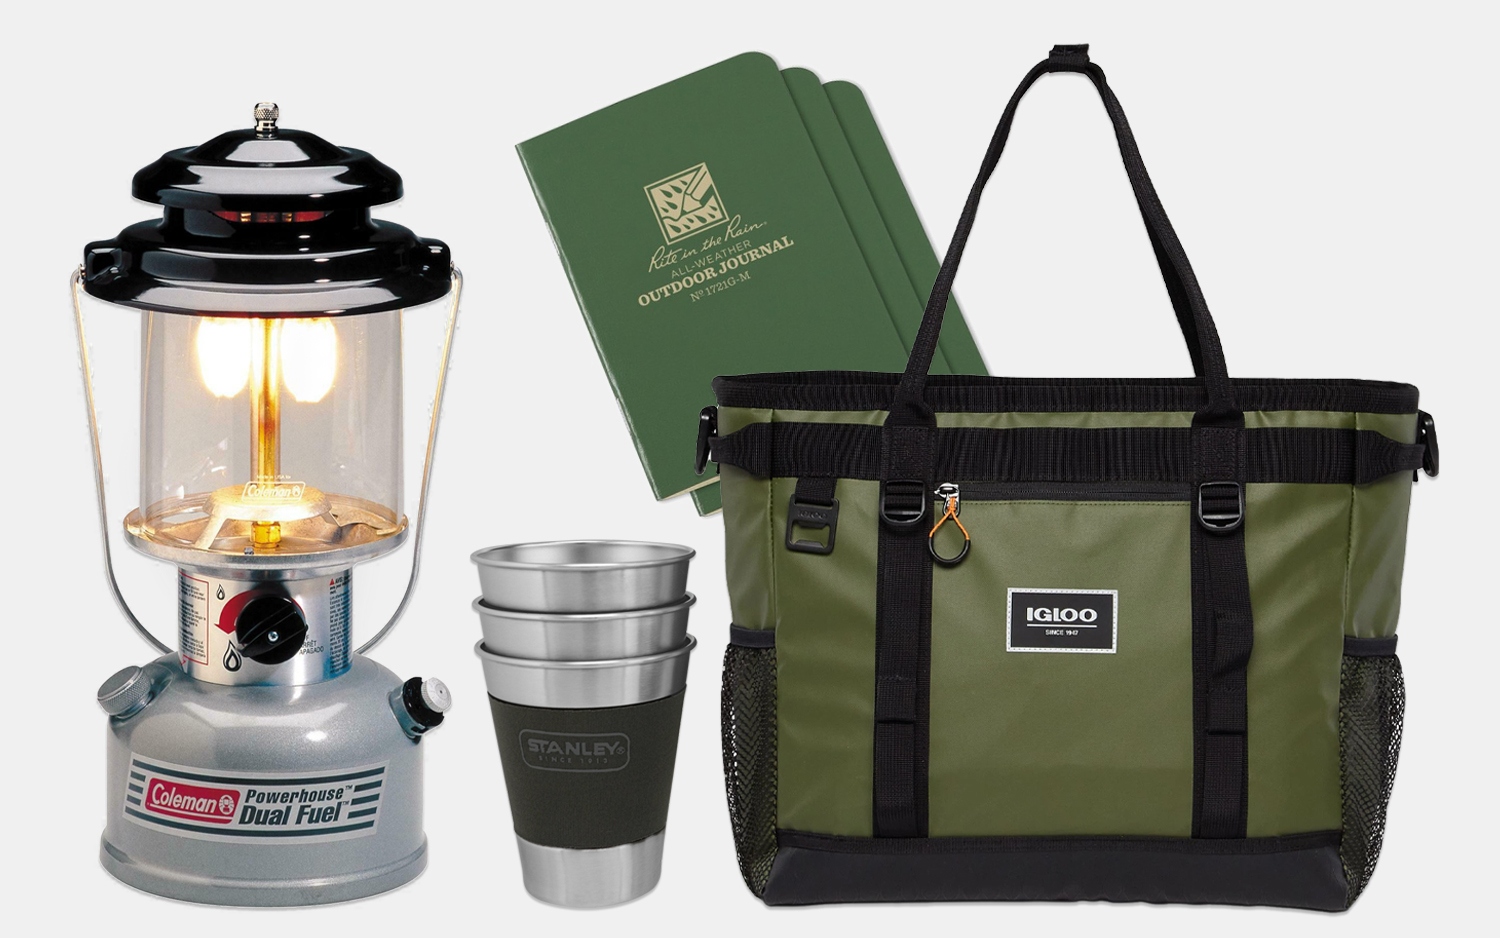 15 Essentials for a Low Tech Camping Trip